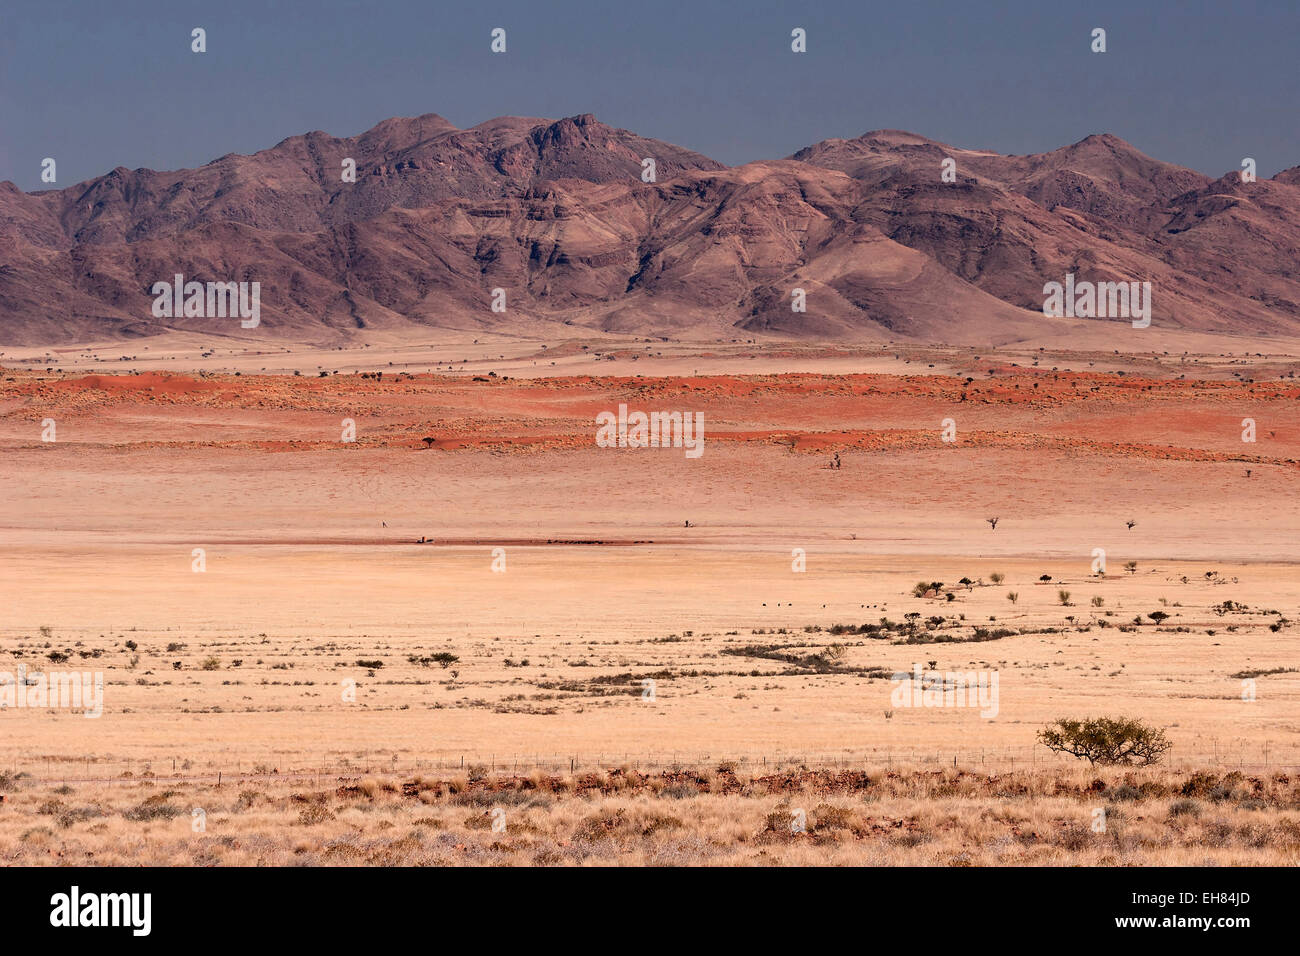 View from pad D707 road of the grassy steppe, sand dunes and the mountains of the Namib Naukluft Park, Namibia - Stock Image